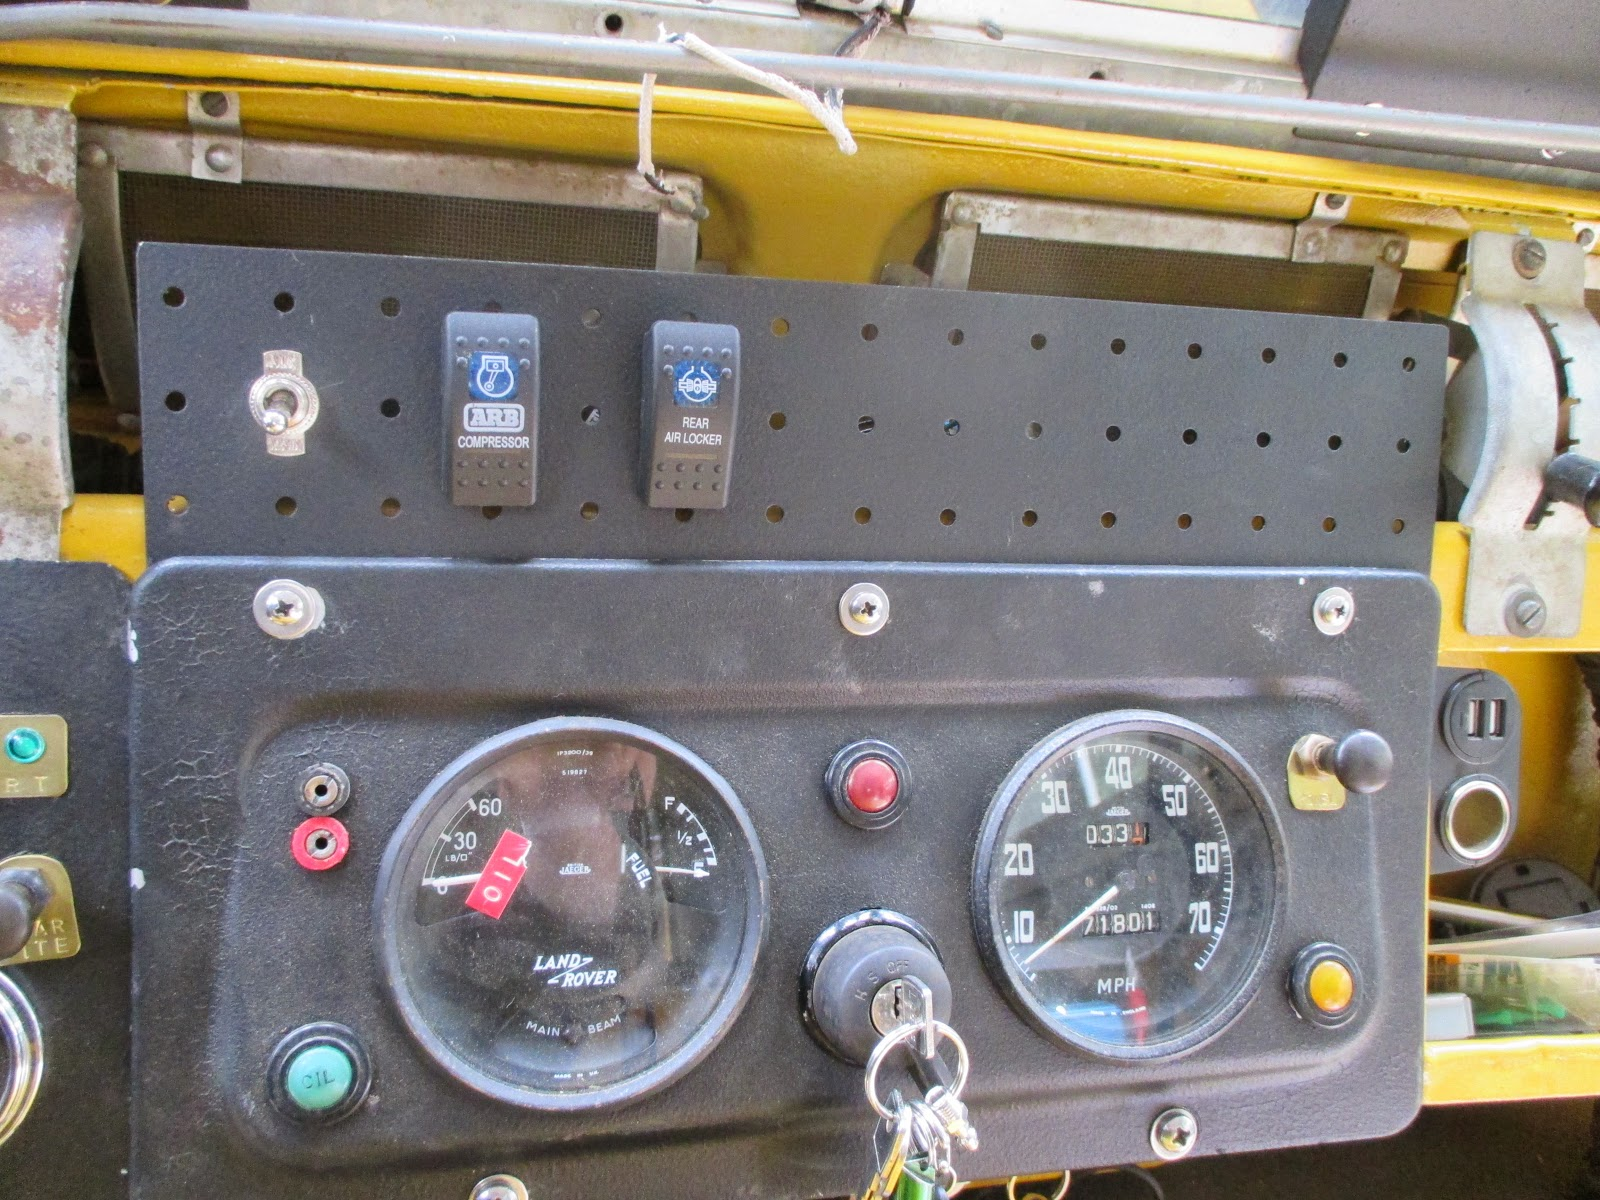 Genocache Arb Locker Air Compressor Installed Land Rover 109 Wiring Harness Diagram The And Hooking Up Switches Once Battery Was I Could Check For Function It Appears To Be Working As Intended Even